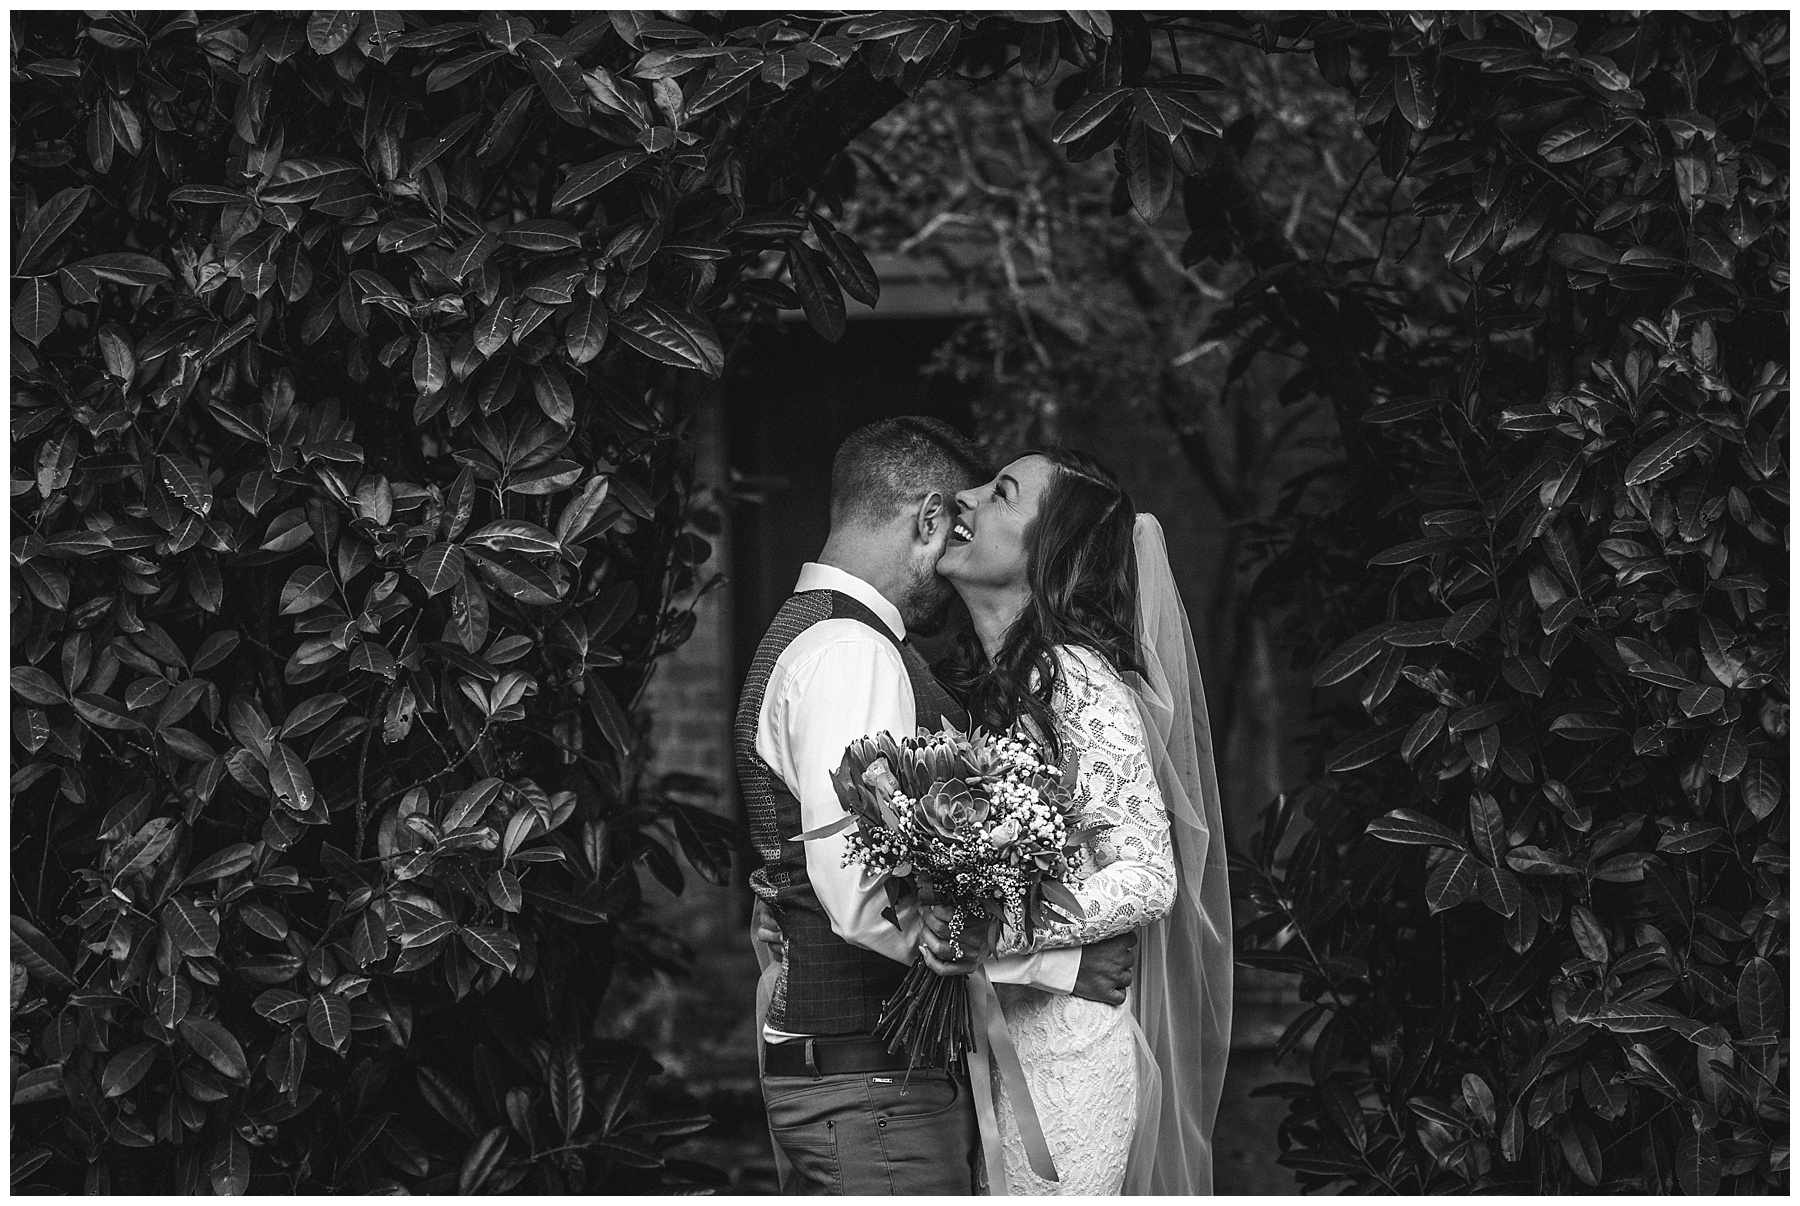 Black and white photo of the bride and groom - de lumière photography